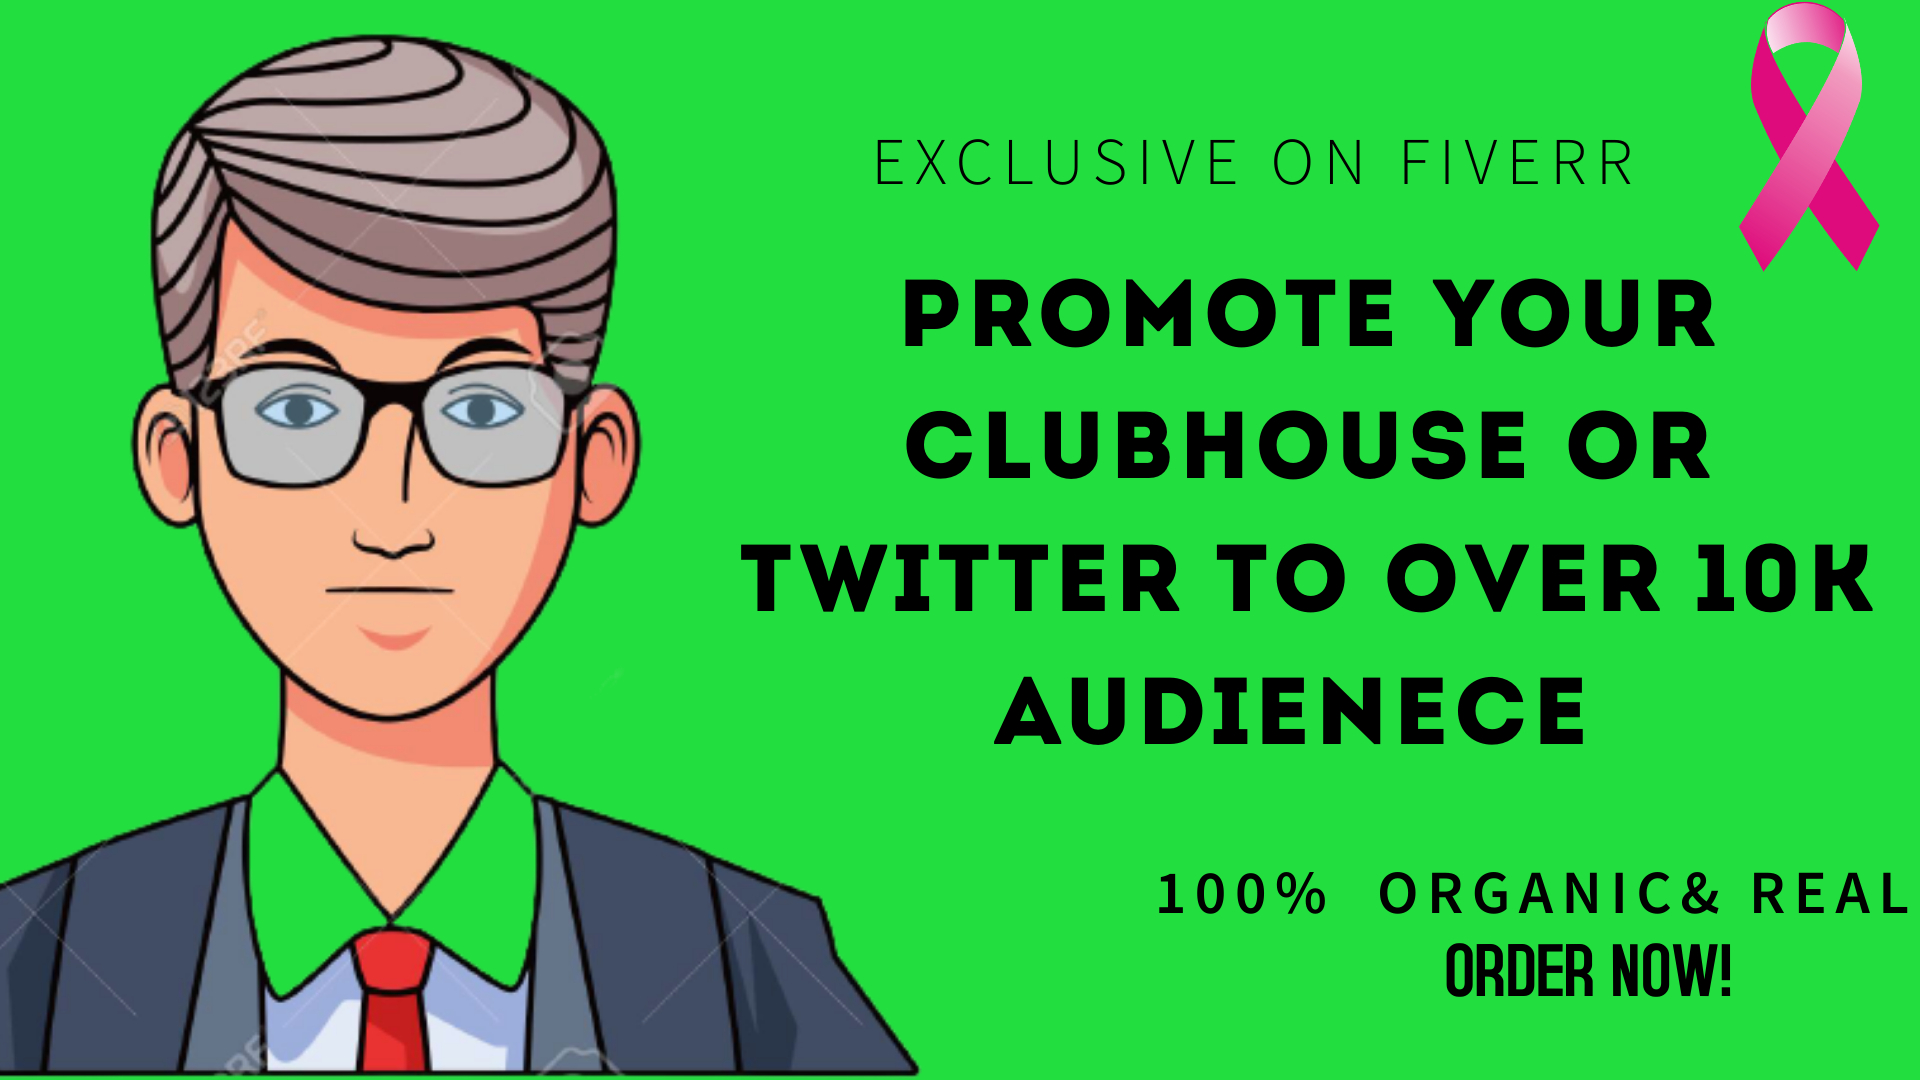 I will promote your clubhouse or twitter to over 10k audience, FiverrBox